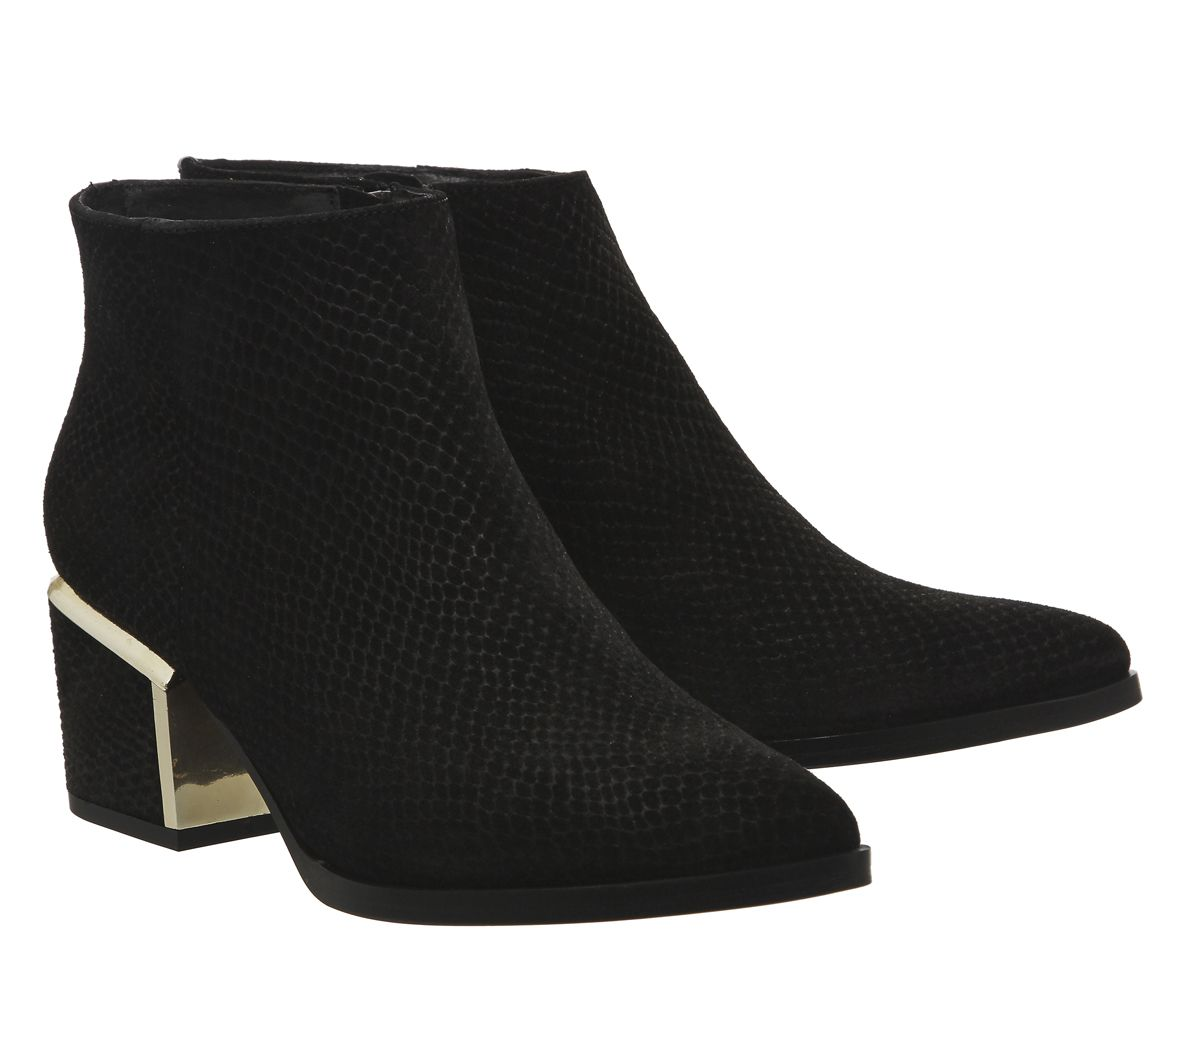 Buy Black Snake Embossed Suede Gold Heel Office Immortal Metal Heeled Boots from OFFICE.co.uk.